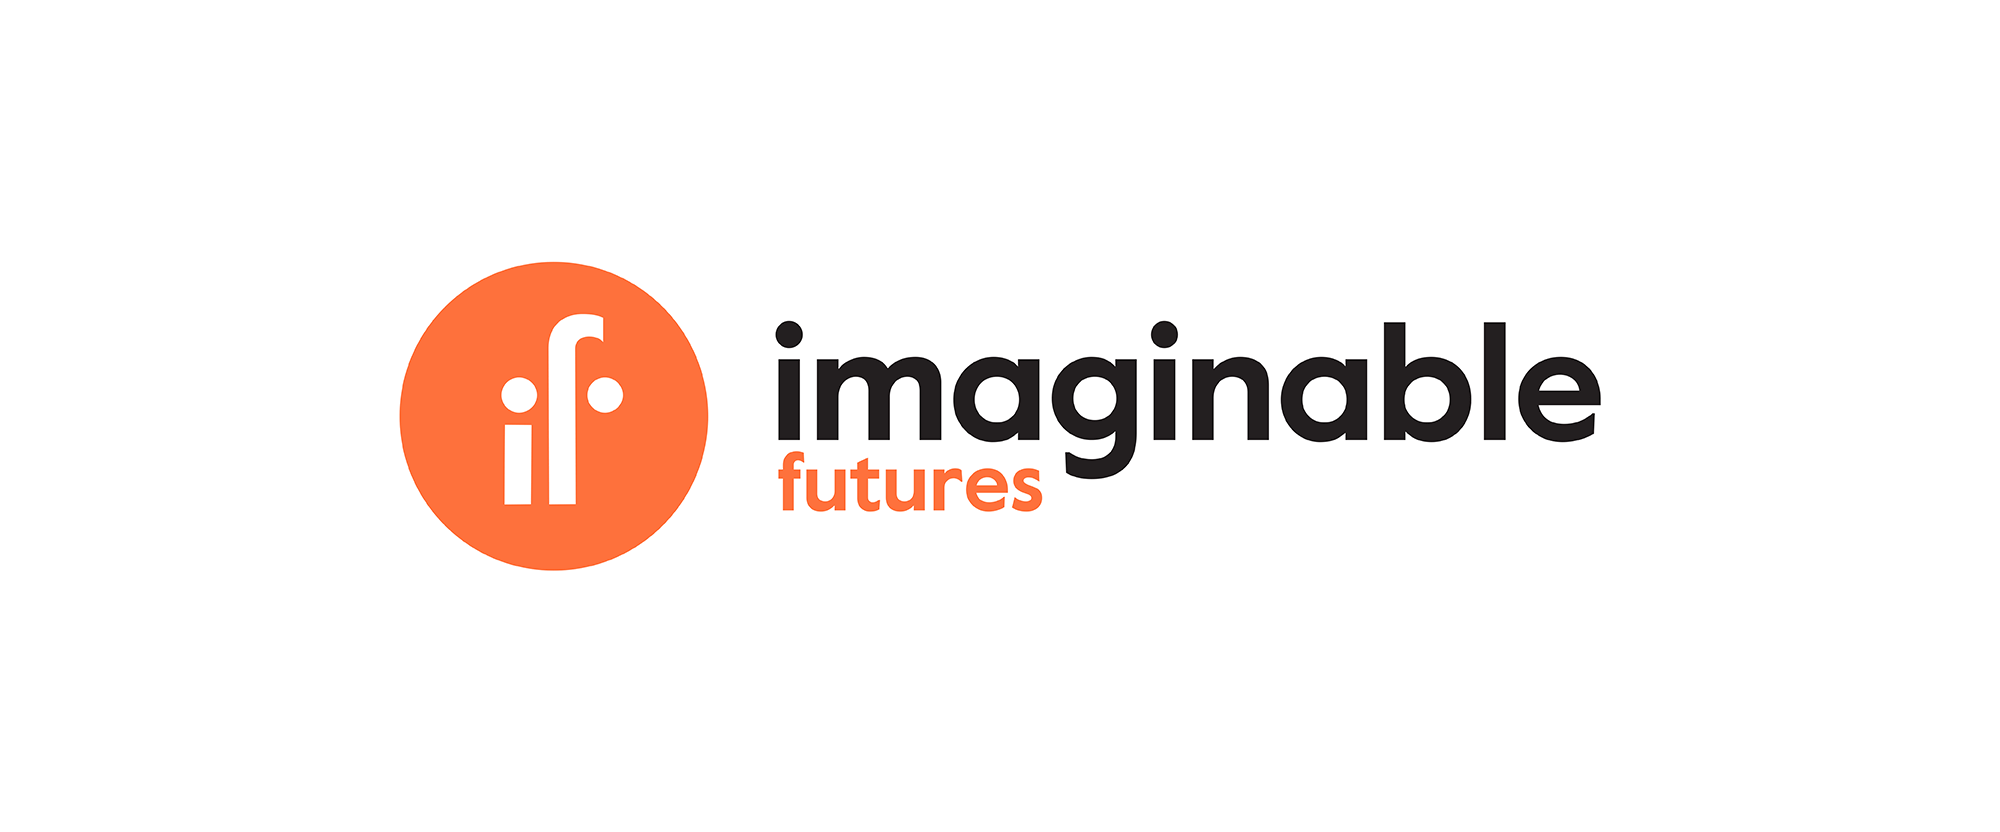 New Logo for Imaginable Futures by Matter Unlimited